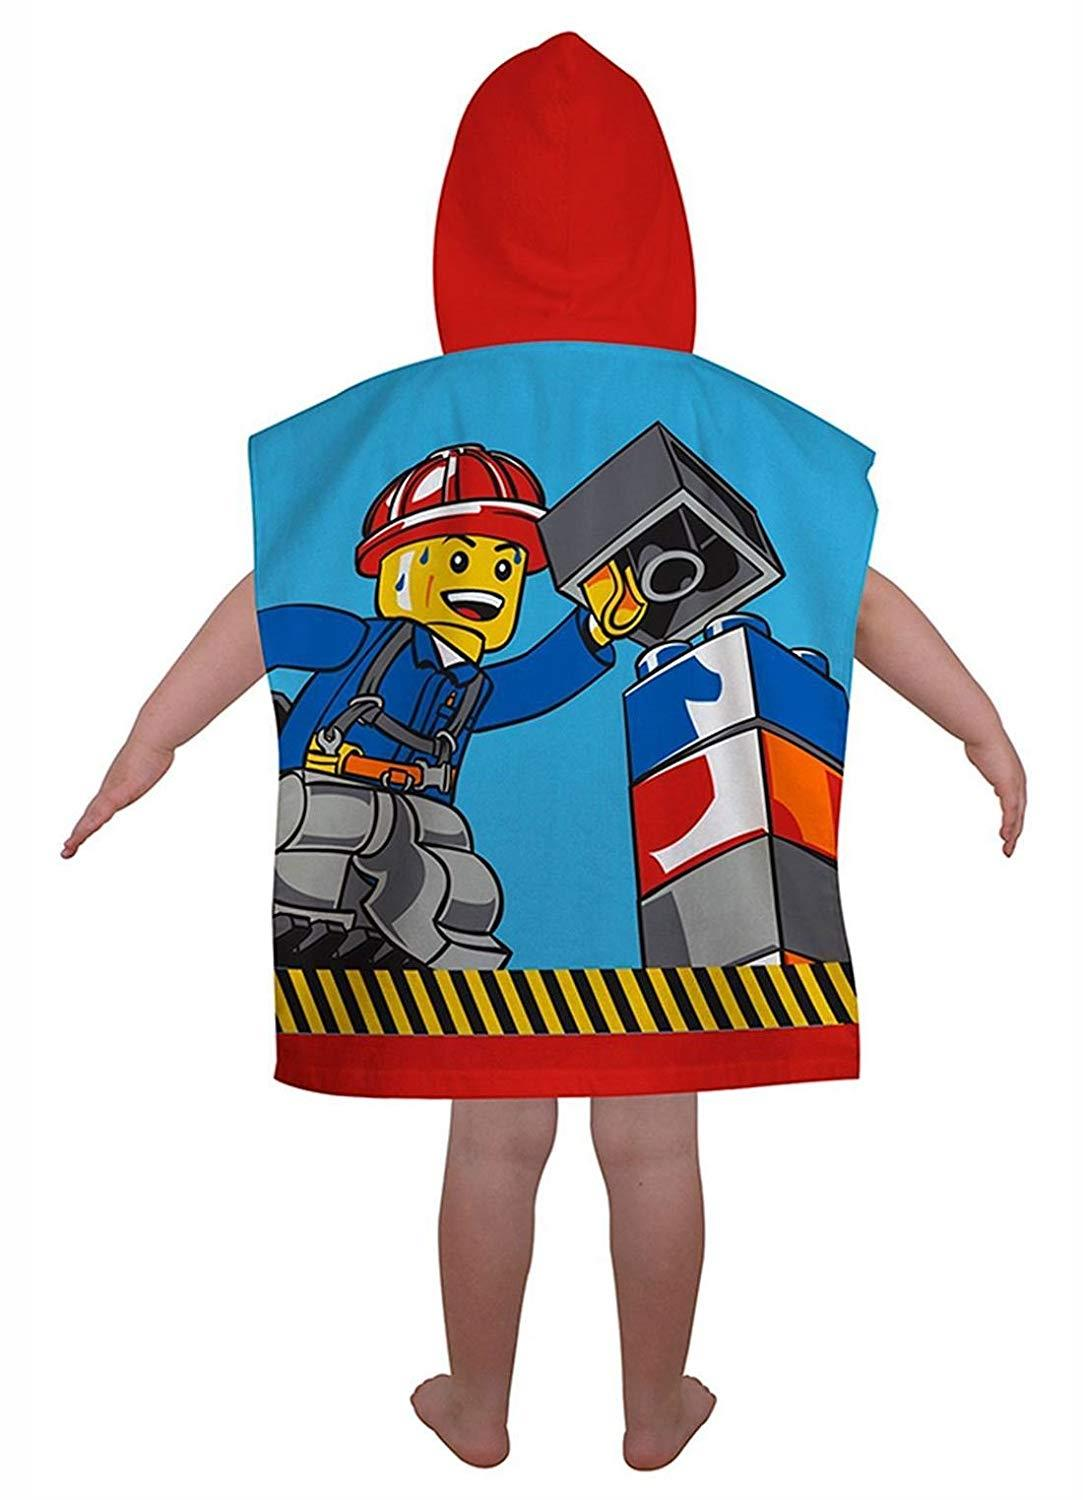 Kids-Boys-Novelty-Girls-Character-Hooded-Towel-Poncho-Beach-Bath-Swim thumbnail 8